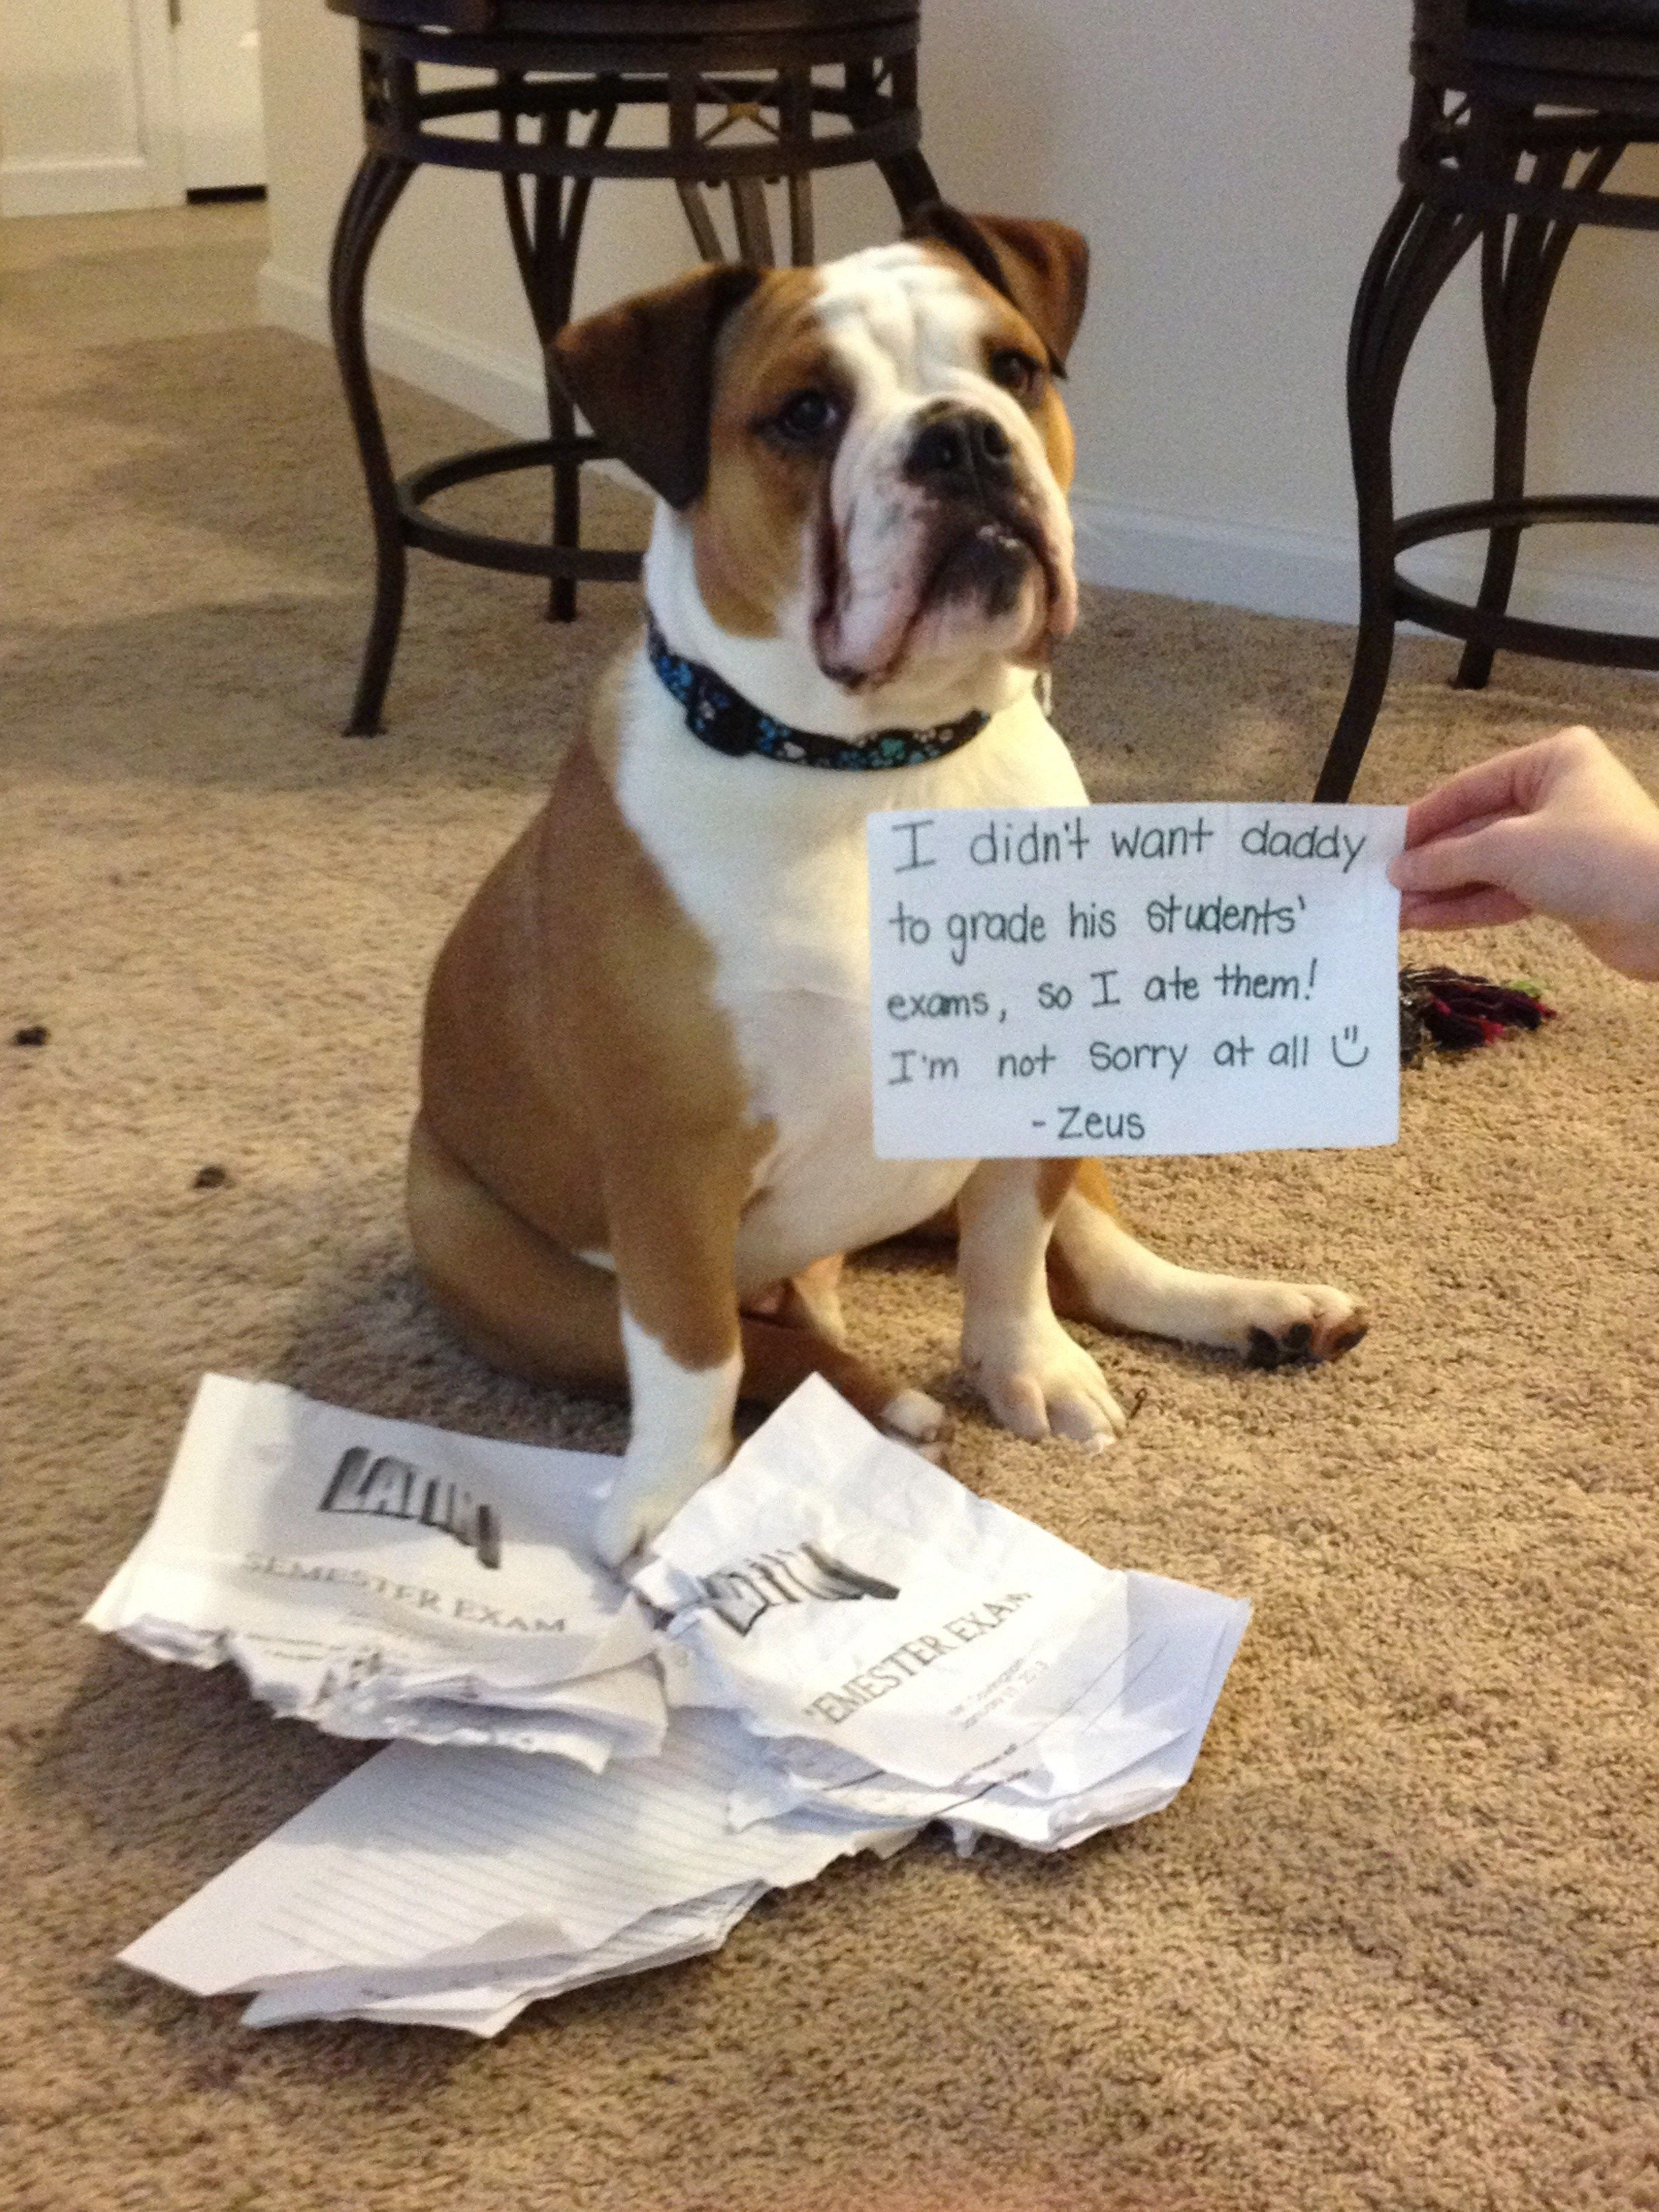 Do dogs eat homework